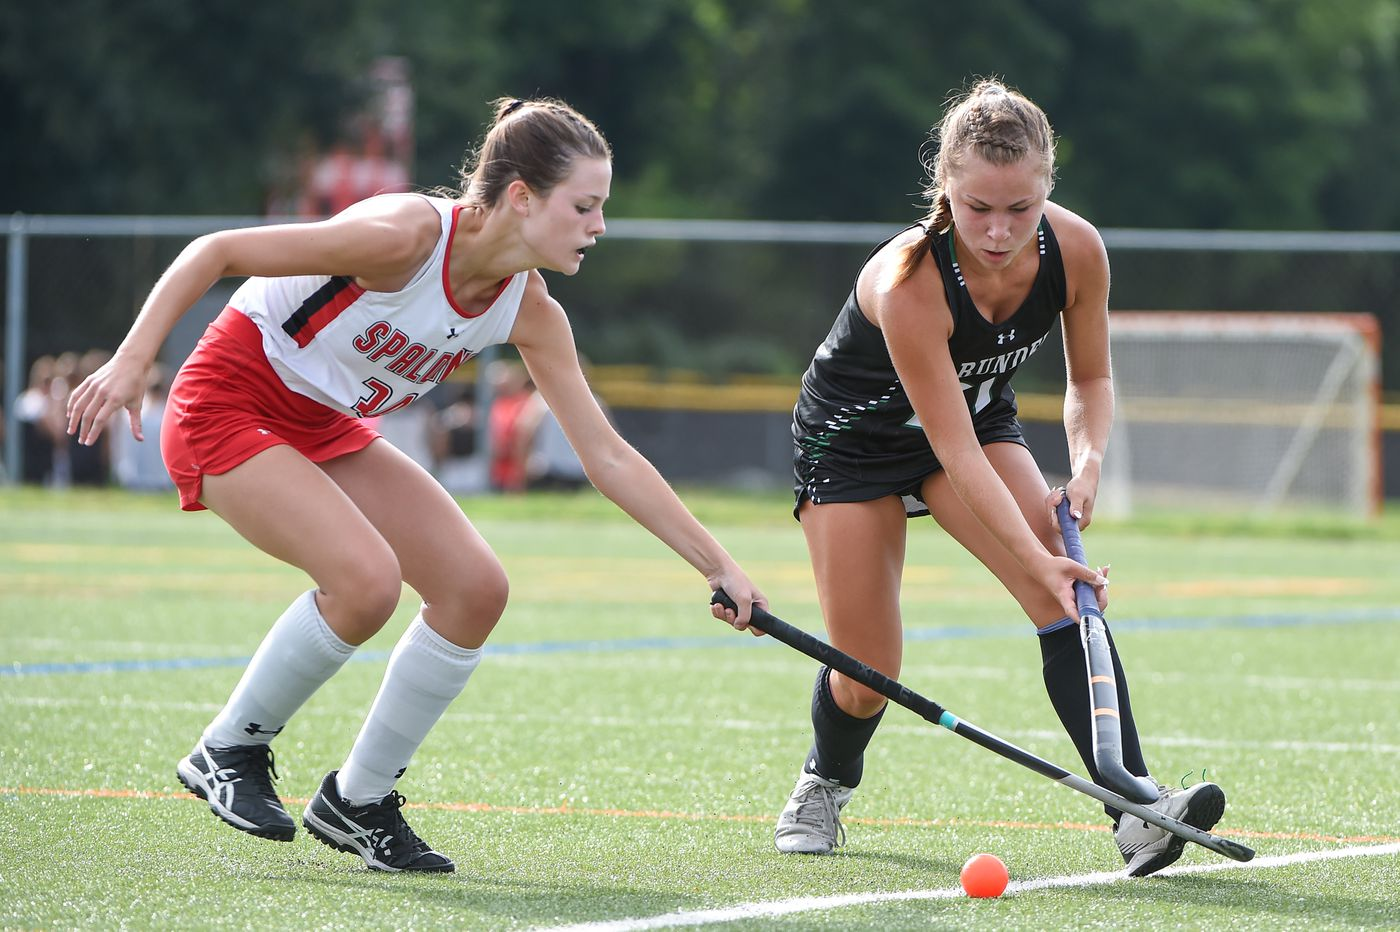 Elly Beavers (34) from Spalding and Christina Candella (21) from Arundel fight for ball control in the 2nd period.  Archbishop Spalding will host field hockey at Arundel High School on Thursday, September 10, beating them 5-1 in regular time.  09.09.21